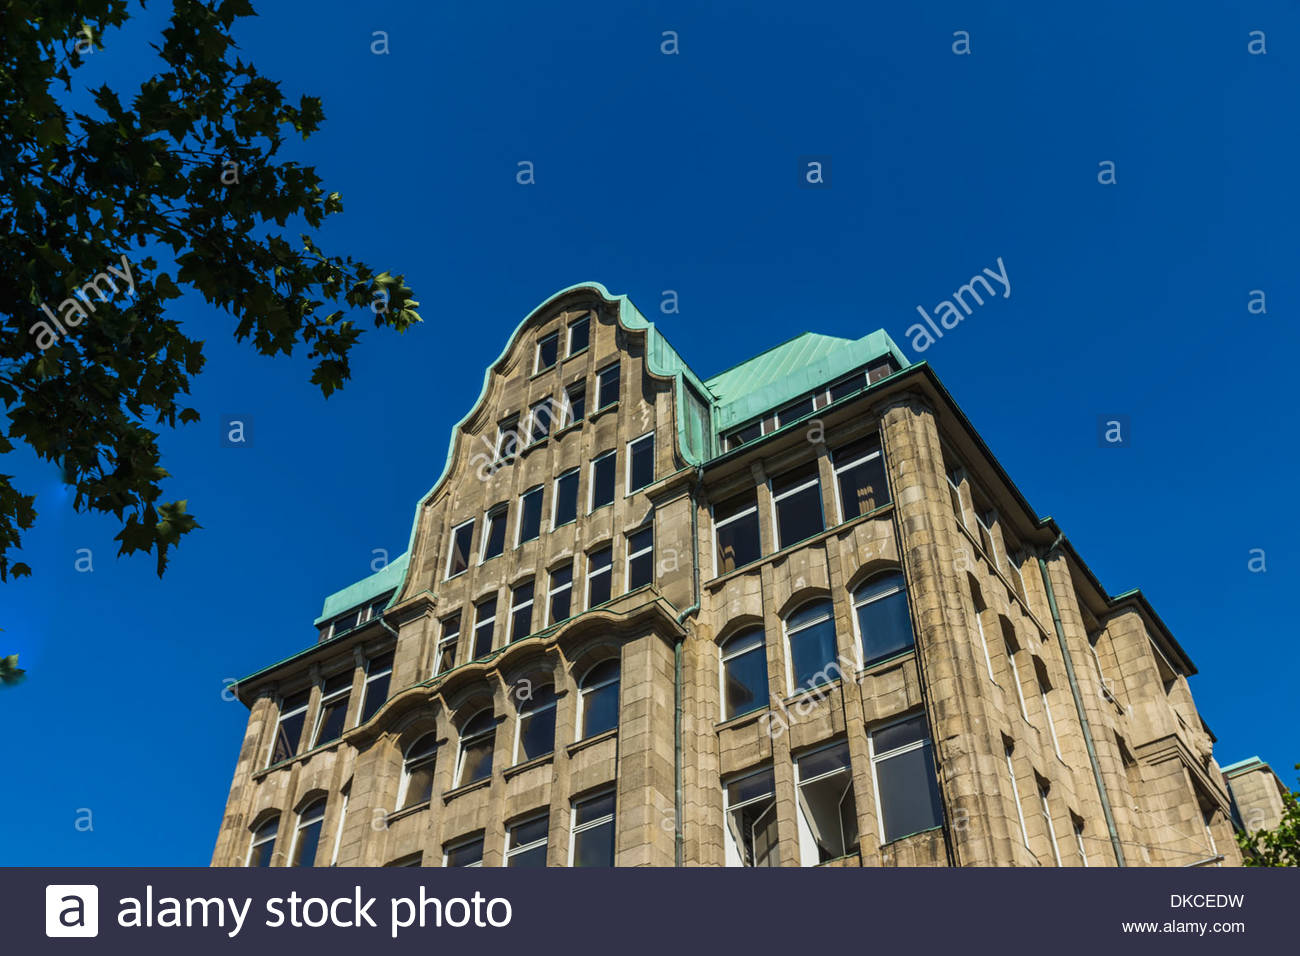 Commercial building, Hamburg, Germany - Stock Image